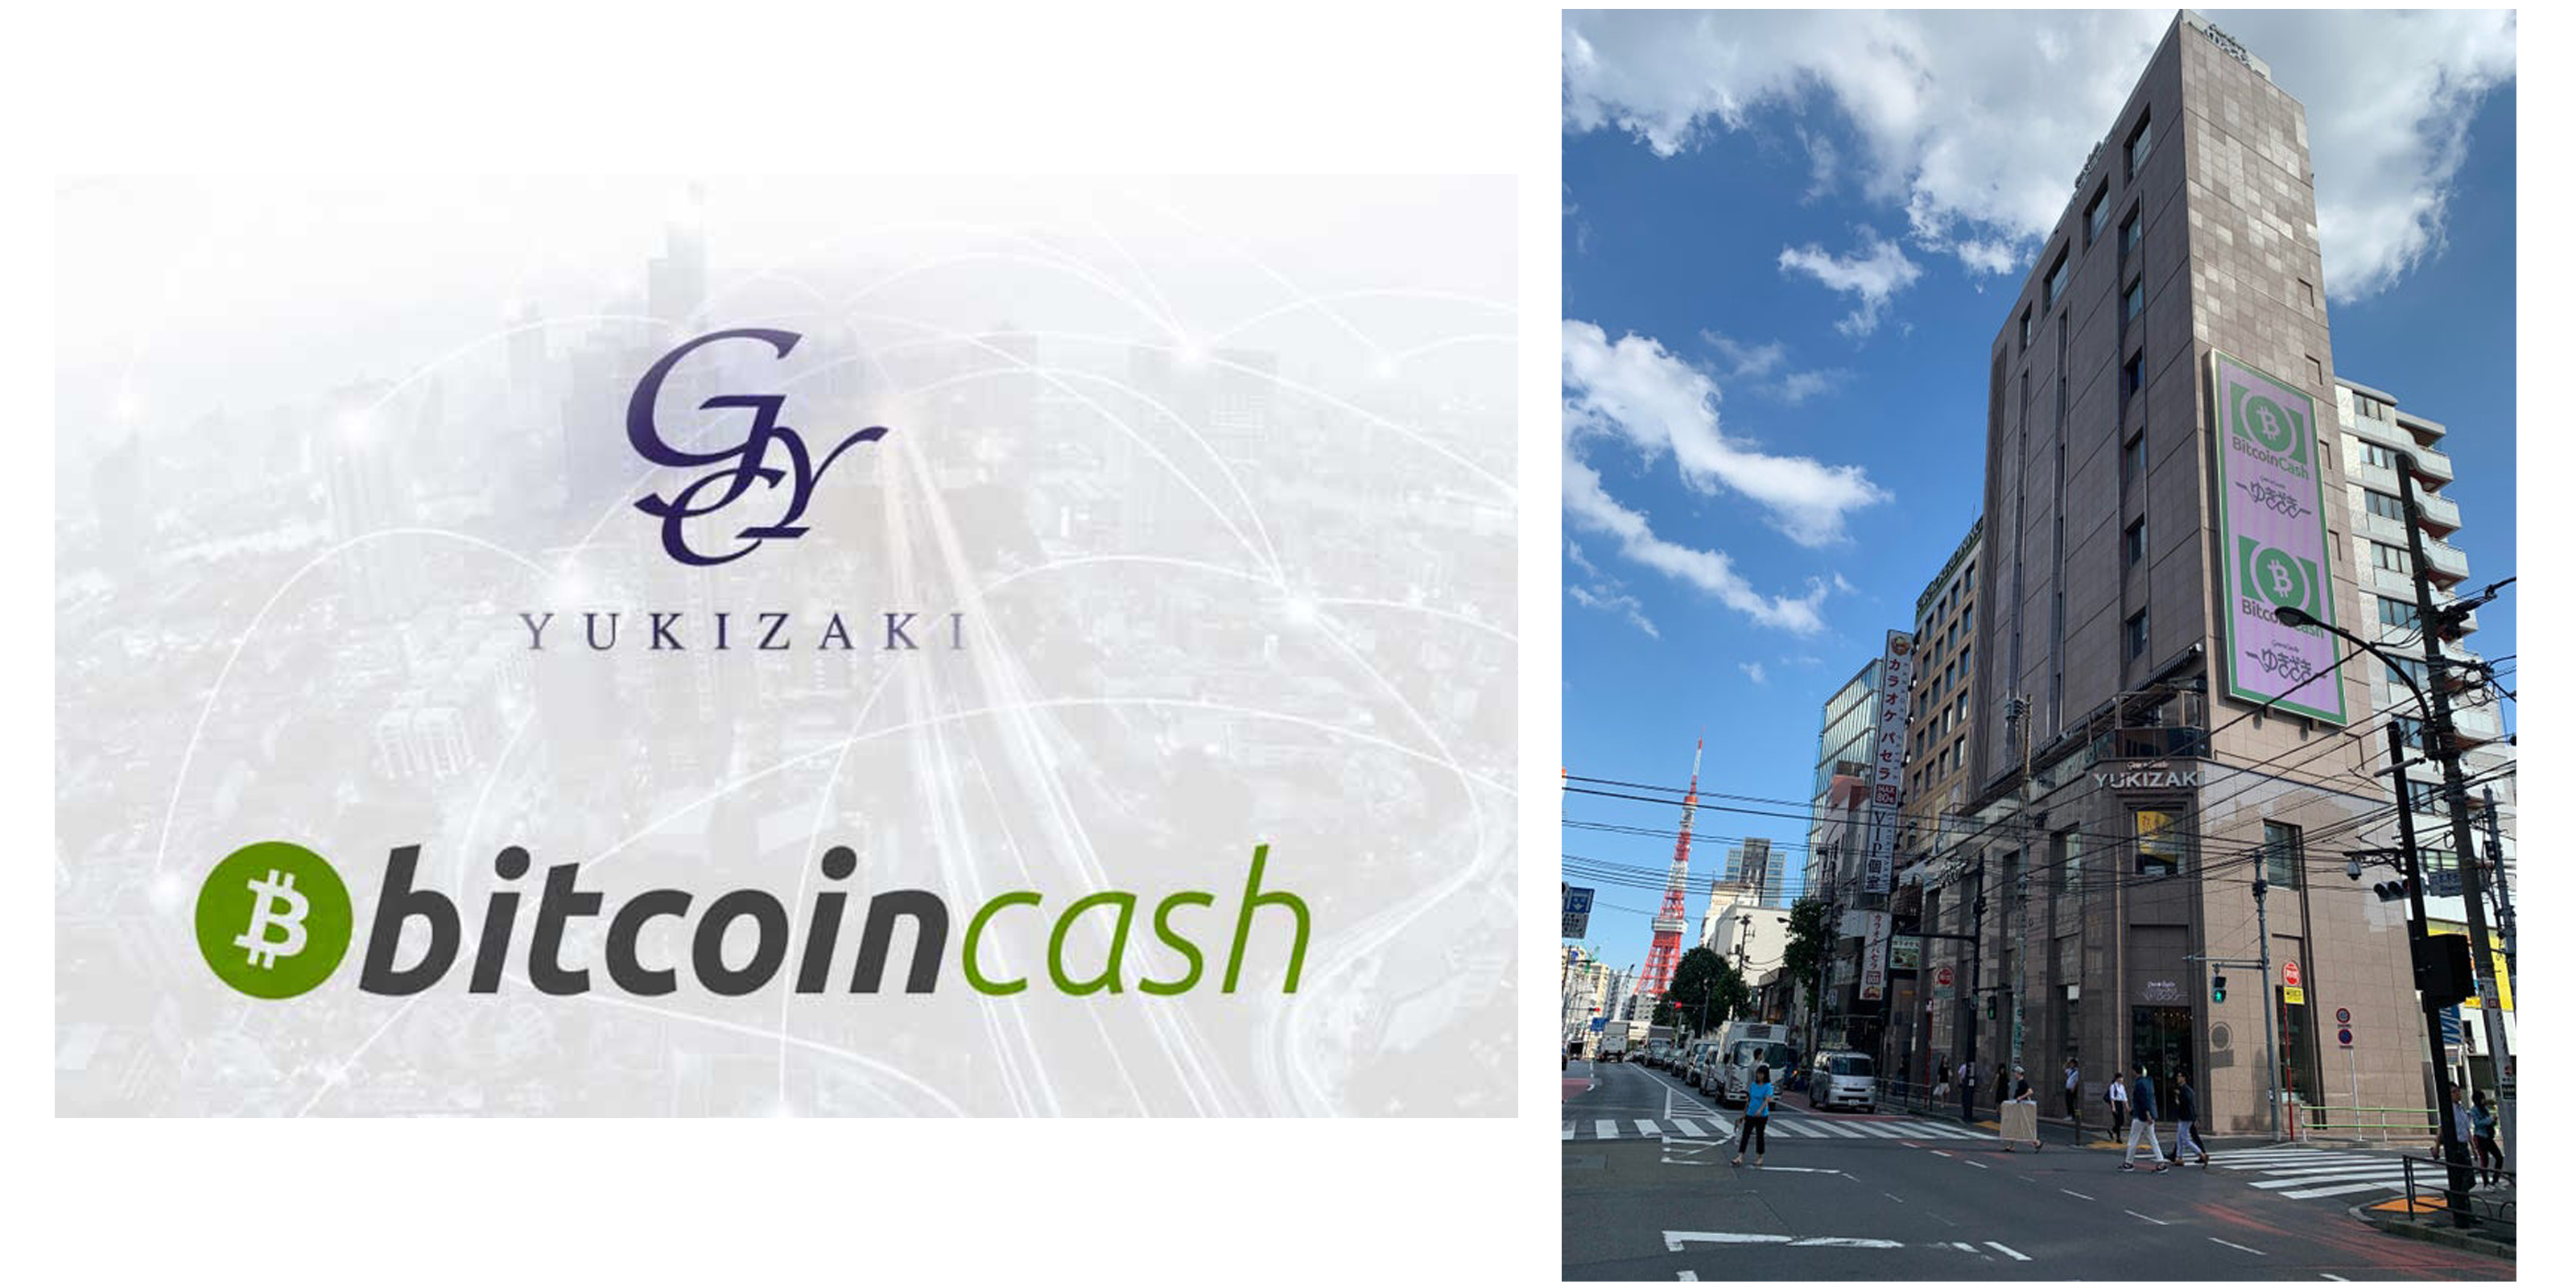 Bitcoin Cash Acceptance and Community Growth Ramp Up